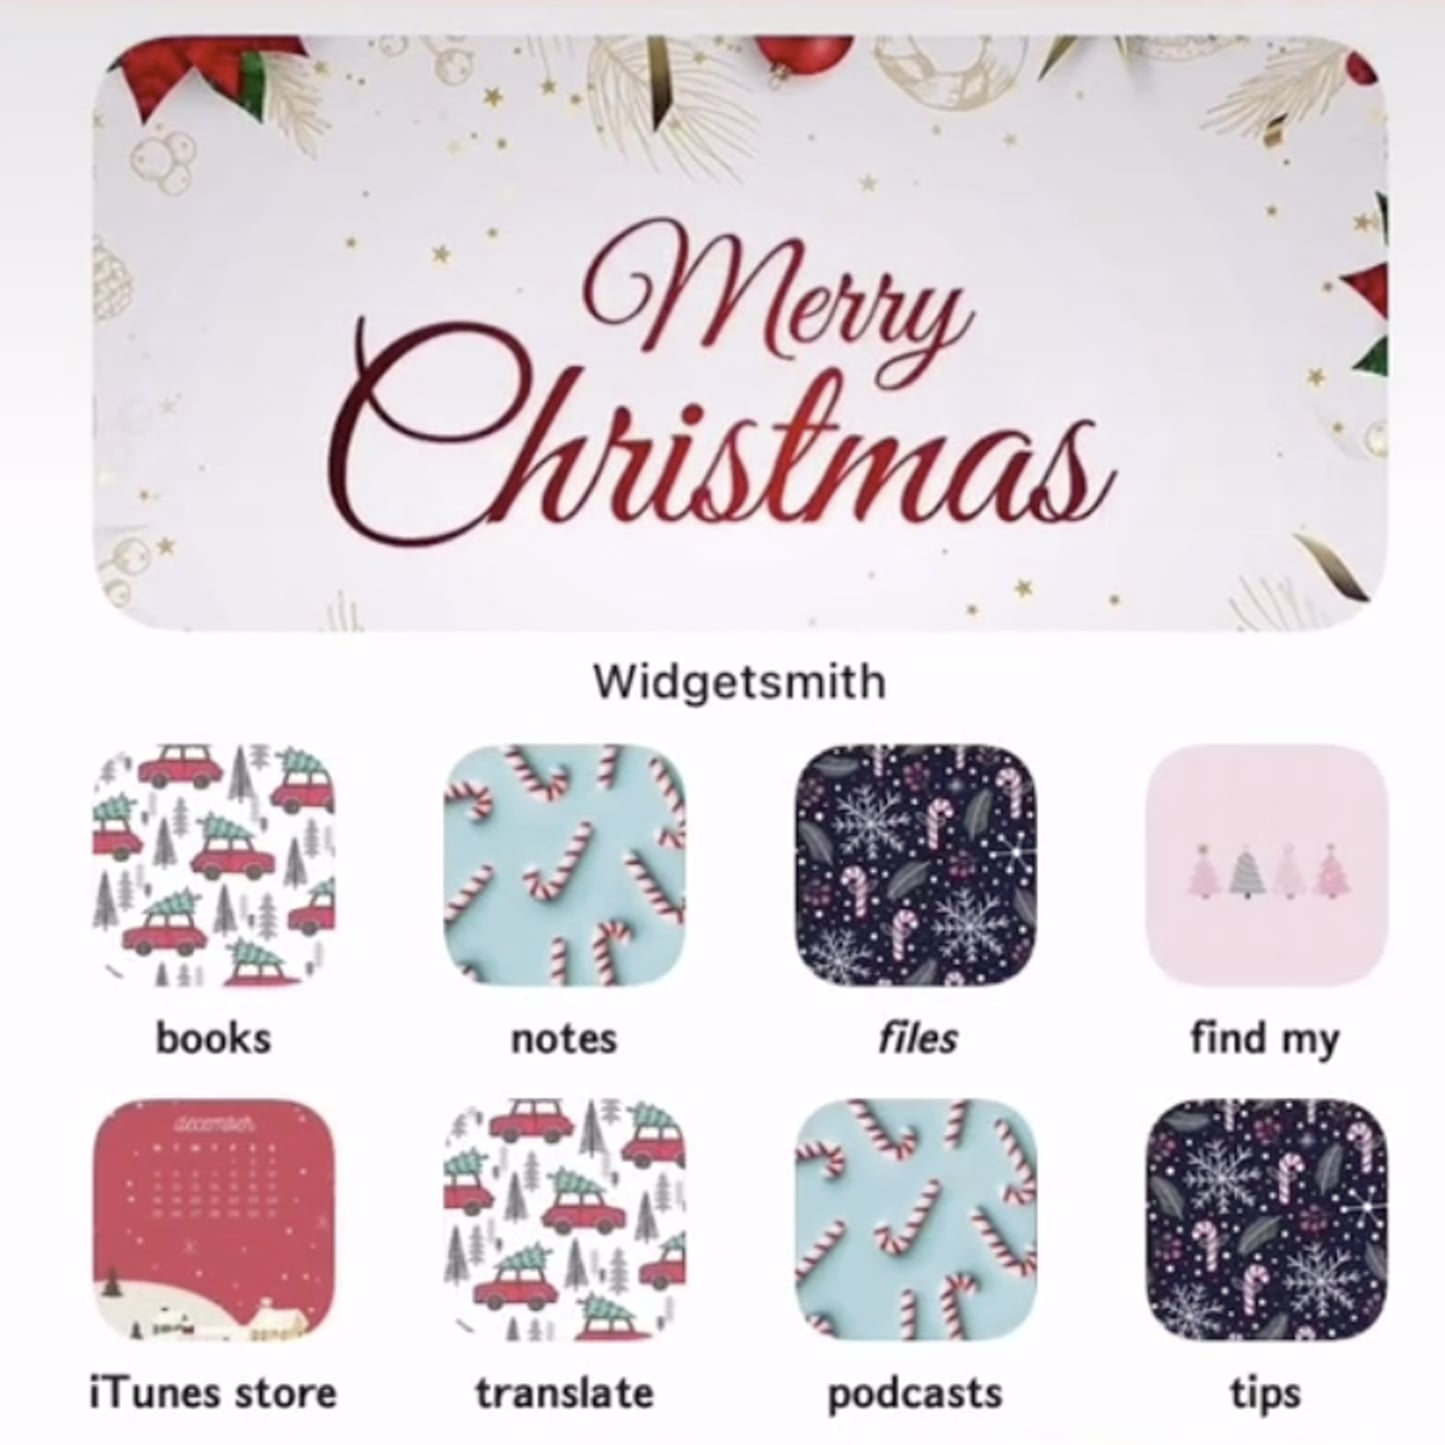 Christmas Ios 14 Home Screen Aesthetic Ideas Popsugar Tech